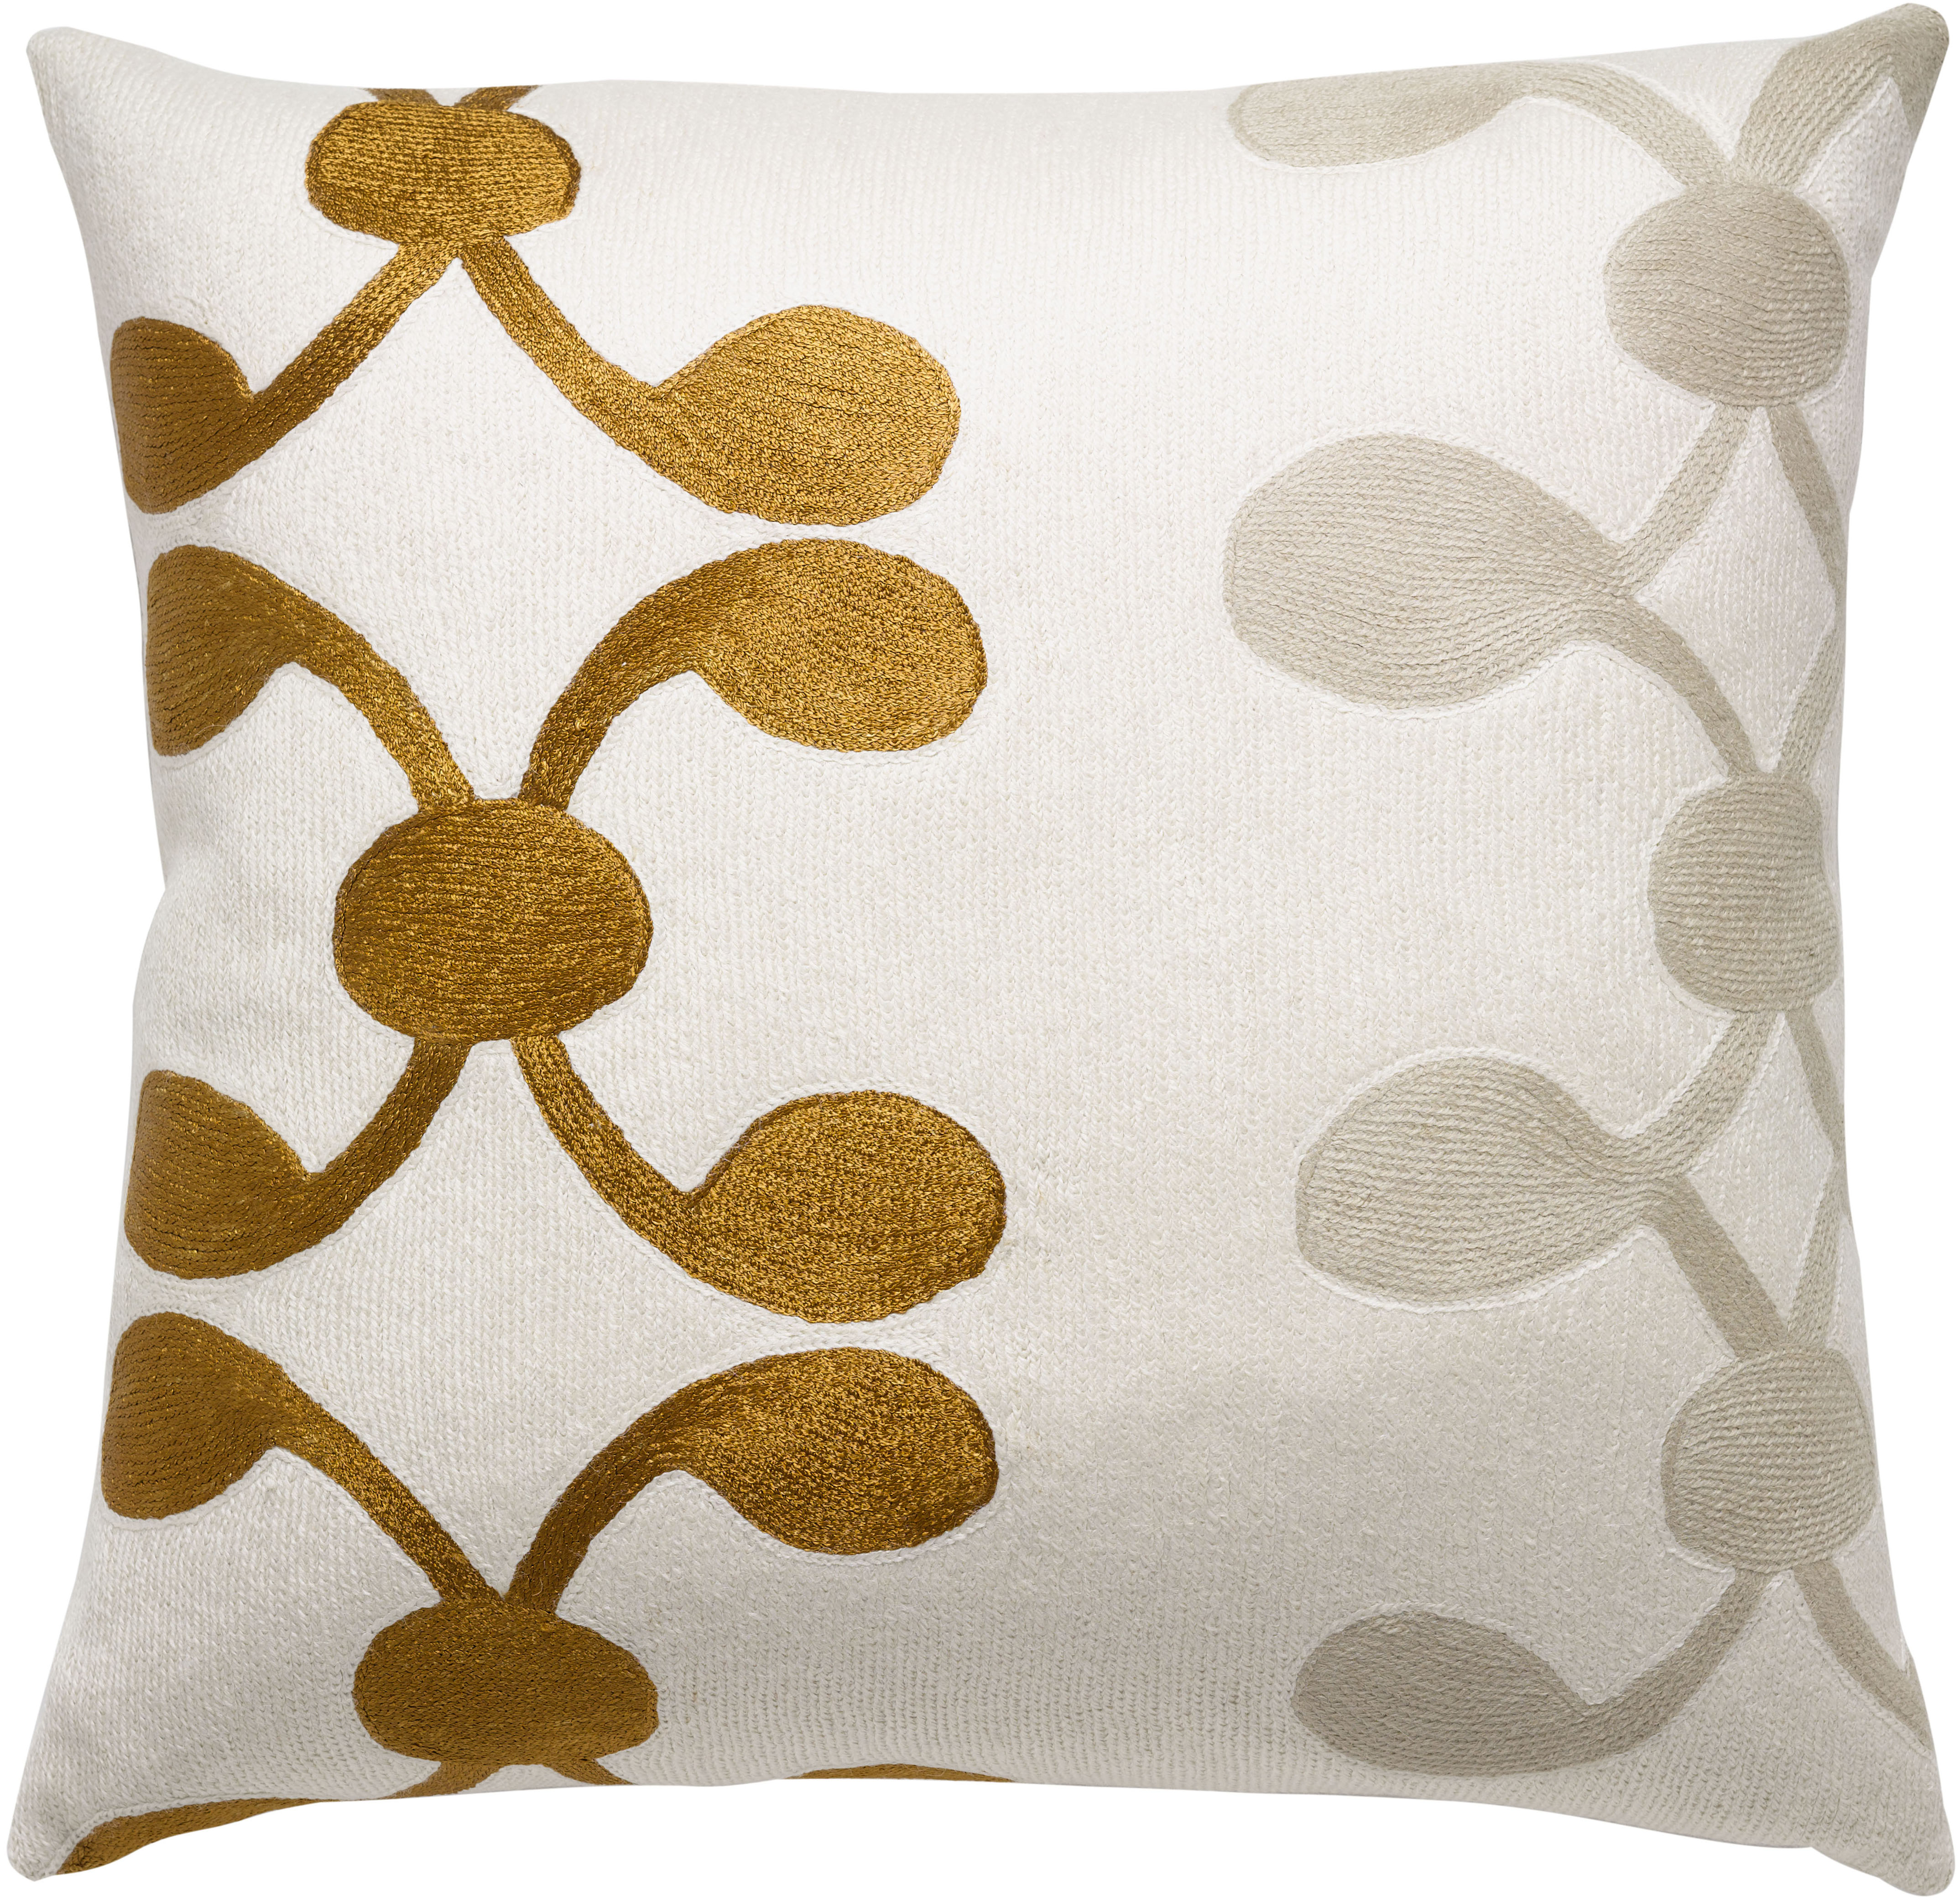 Hand Embroidered Chain Stitch Pillows 18x18 Celine Judy Ross Textiles